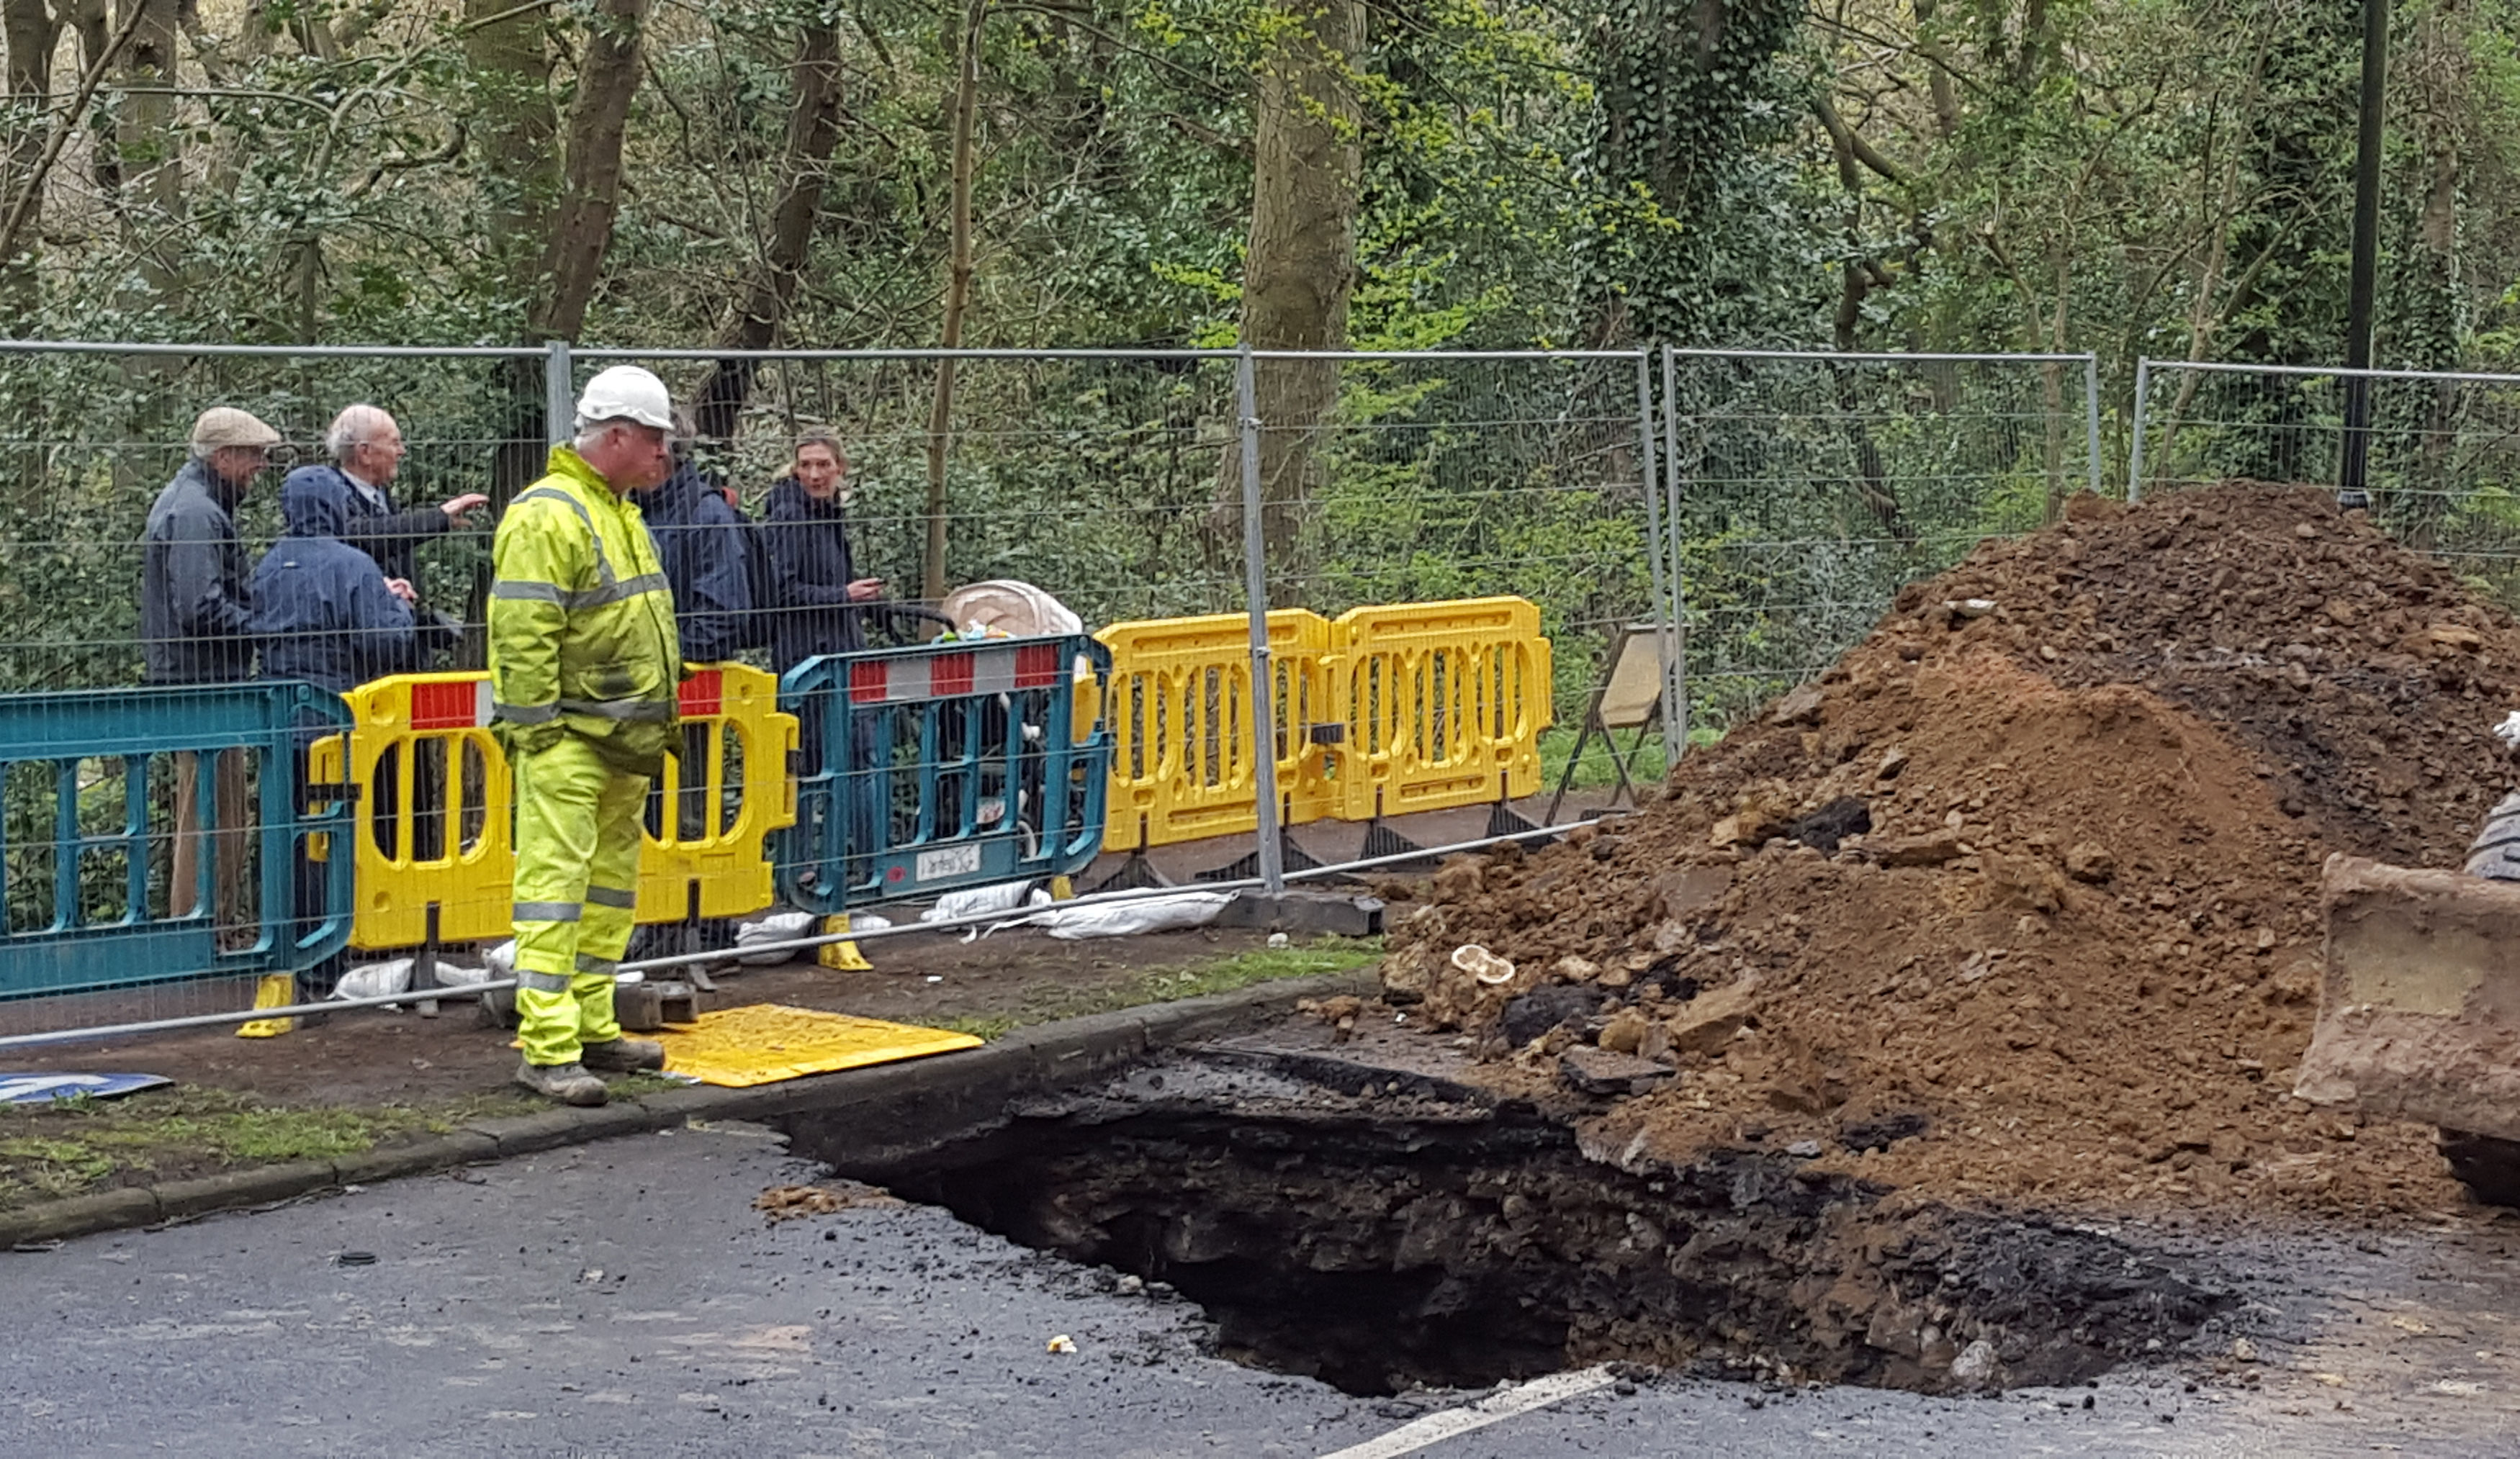 Members of the public look on as work is carried out on a sinkhole more than 20ft deep in Sheffield.